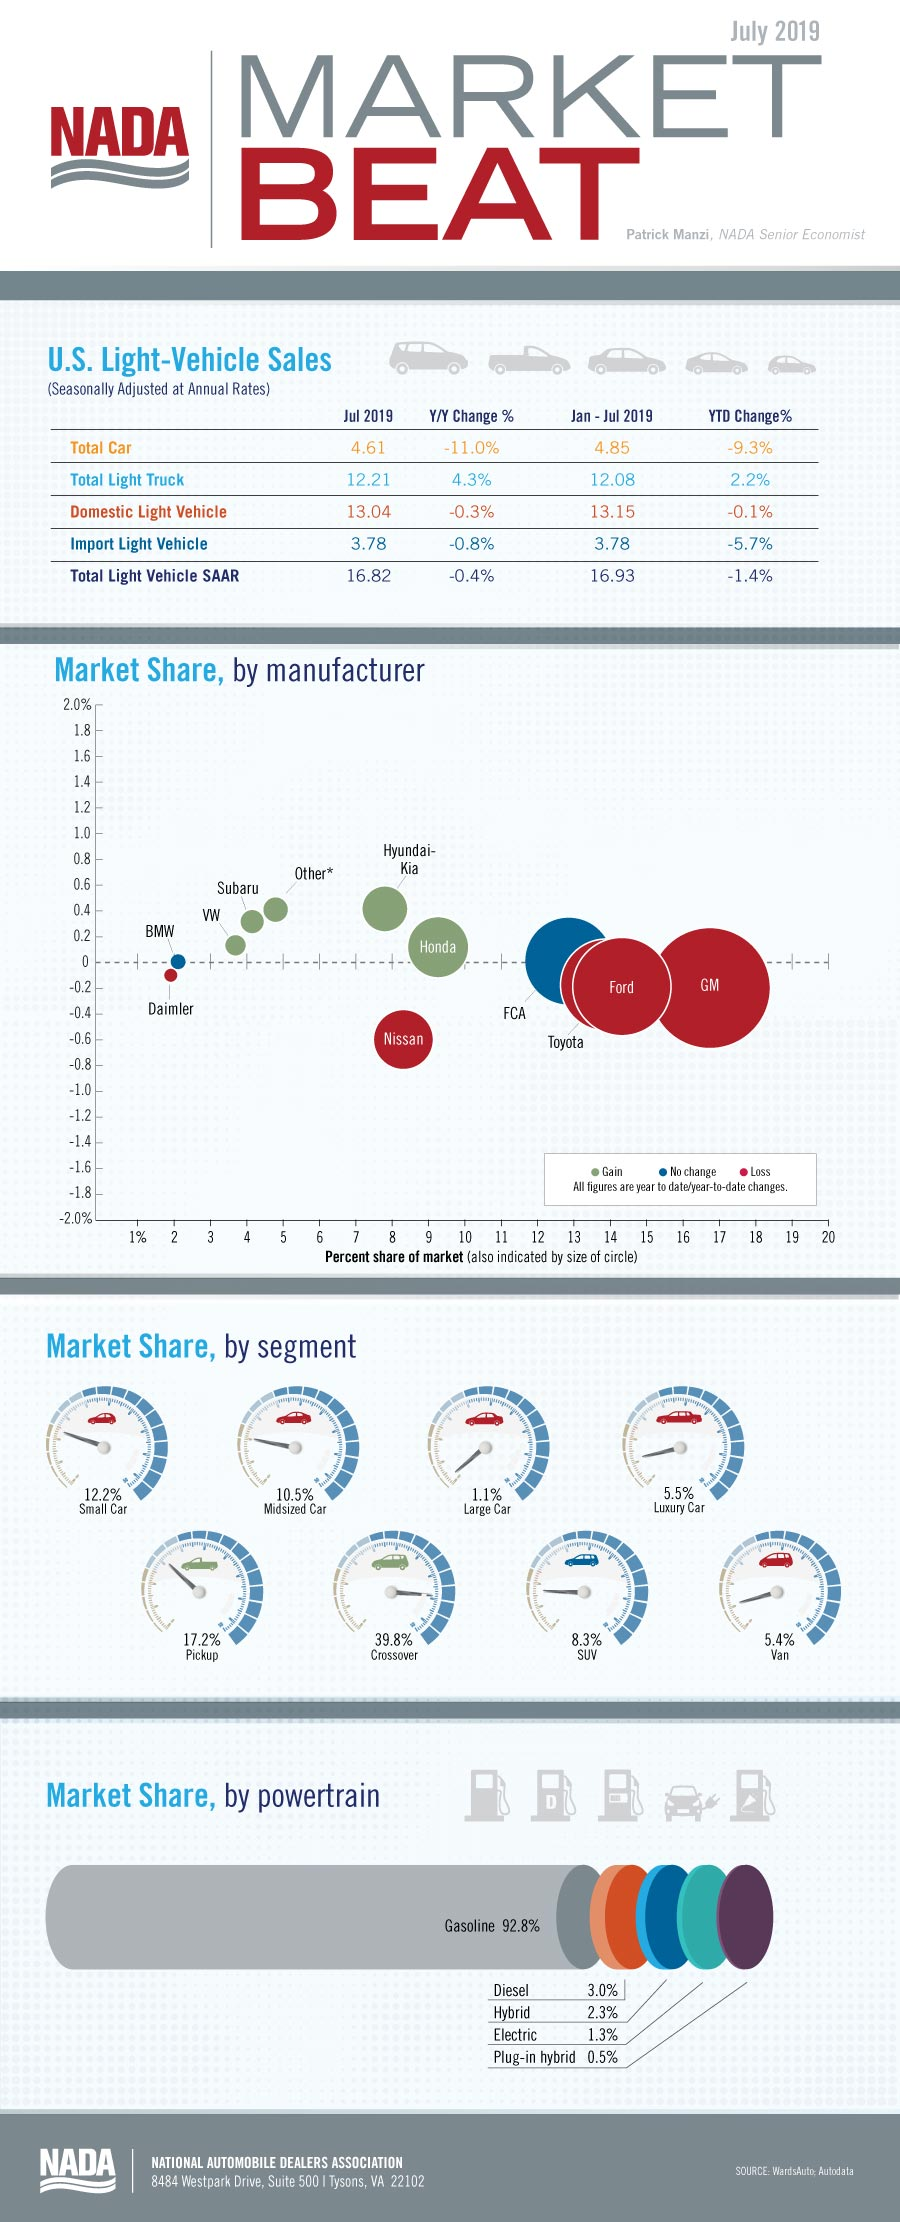 Market_Beat_infographic_July2019-blog